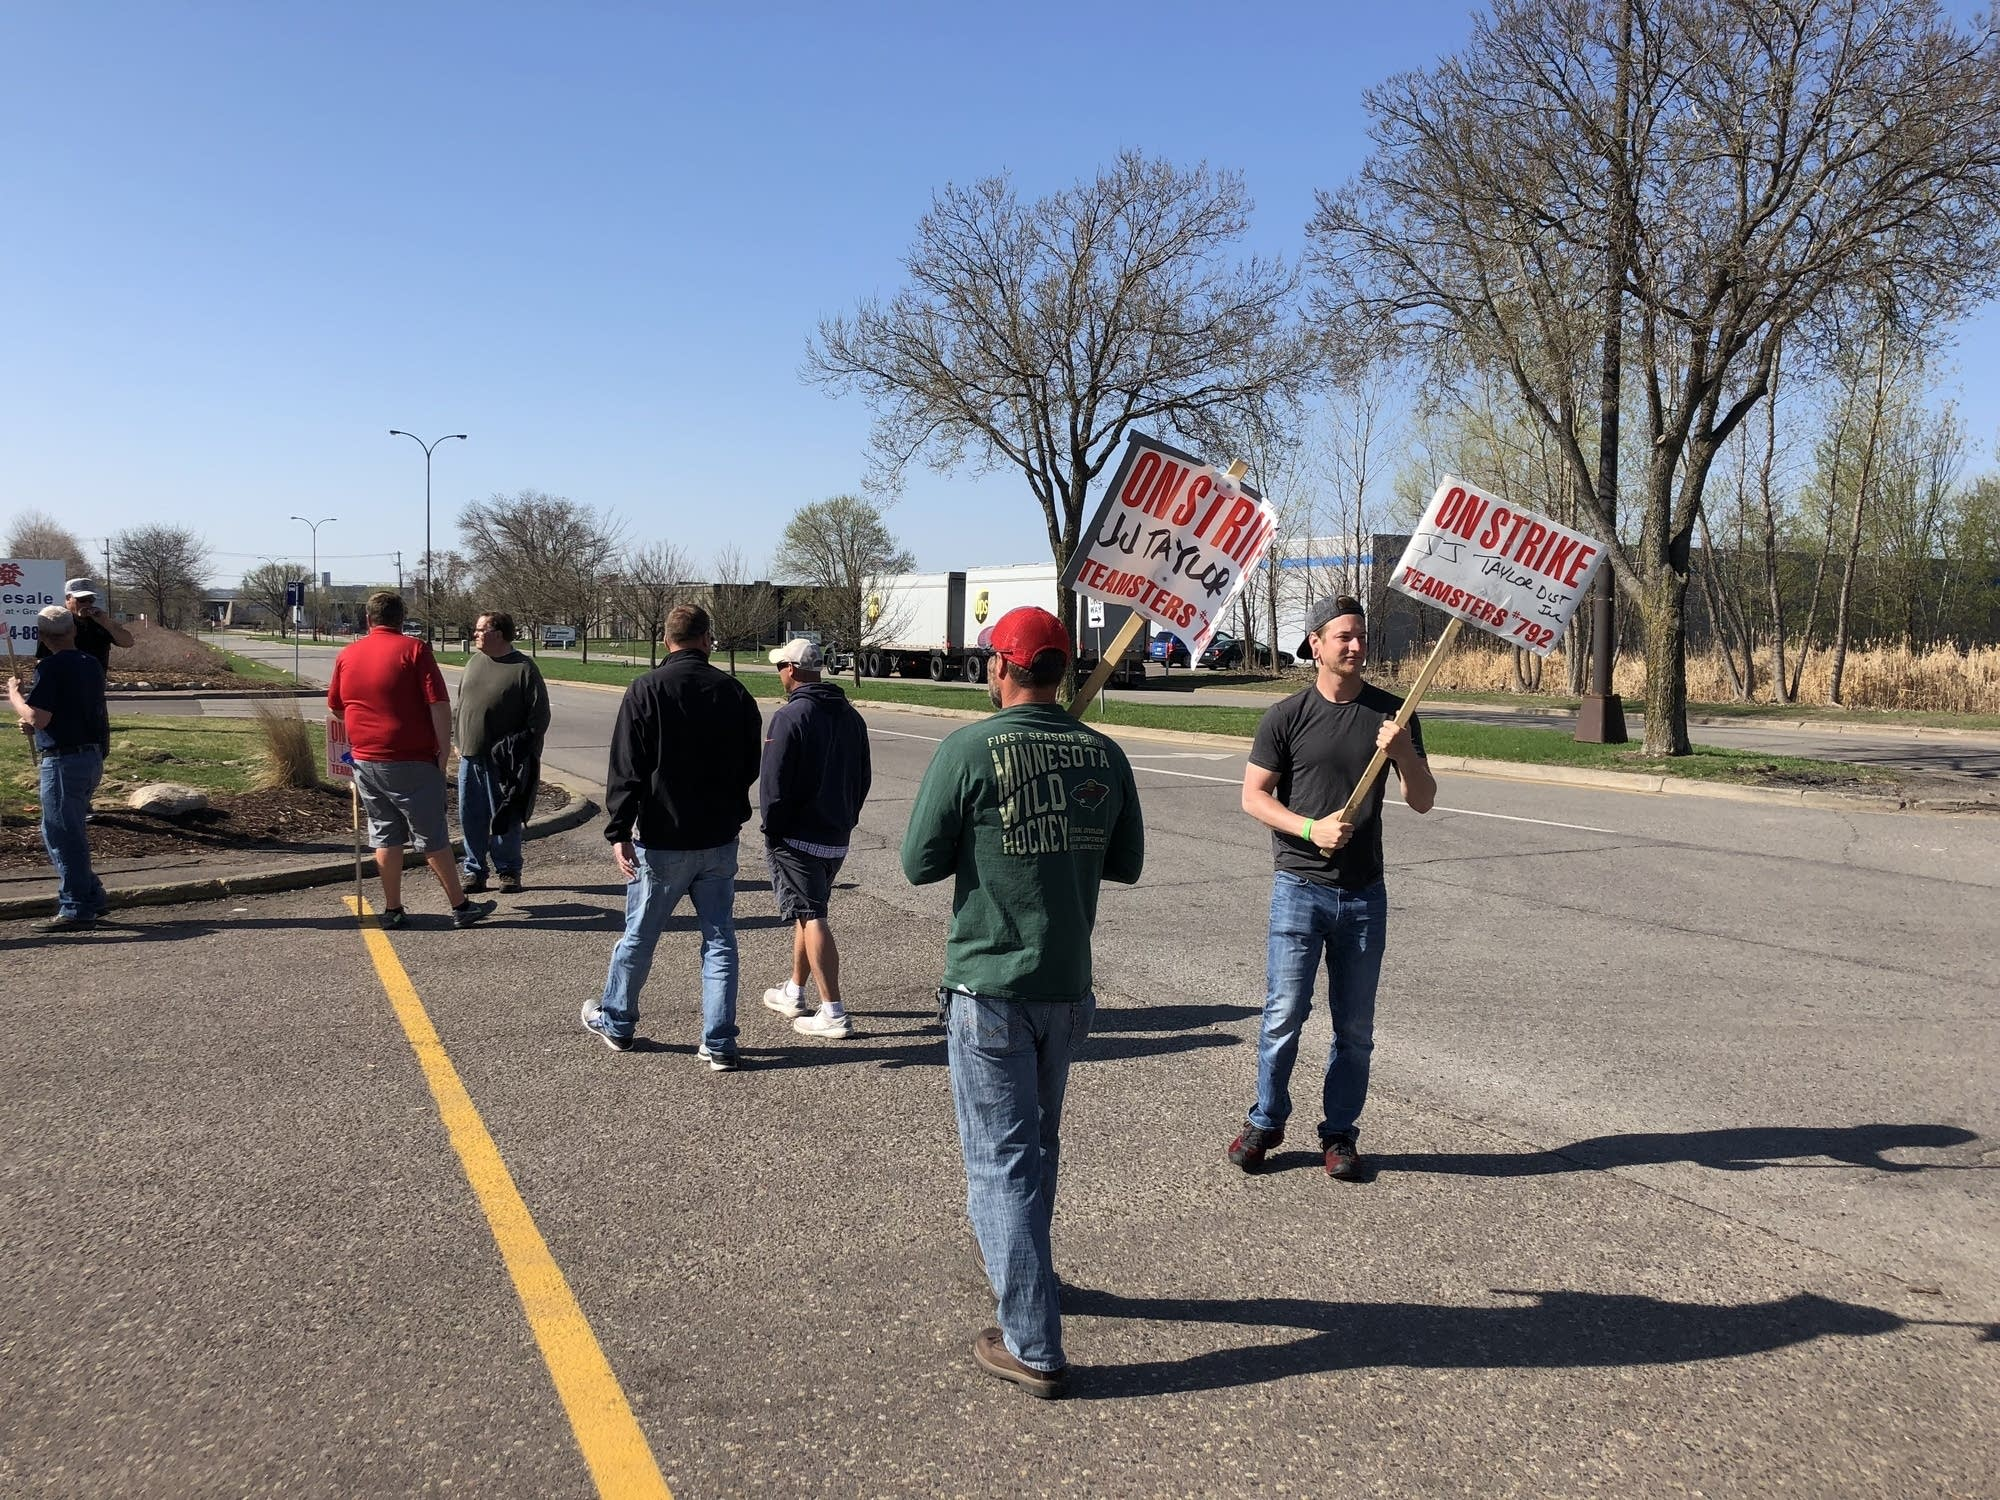 Strikers were picketing the J.J. Taylor distribution facility